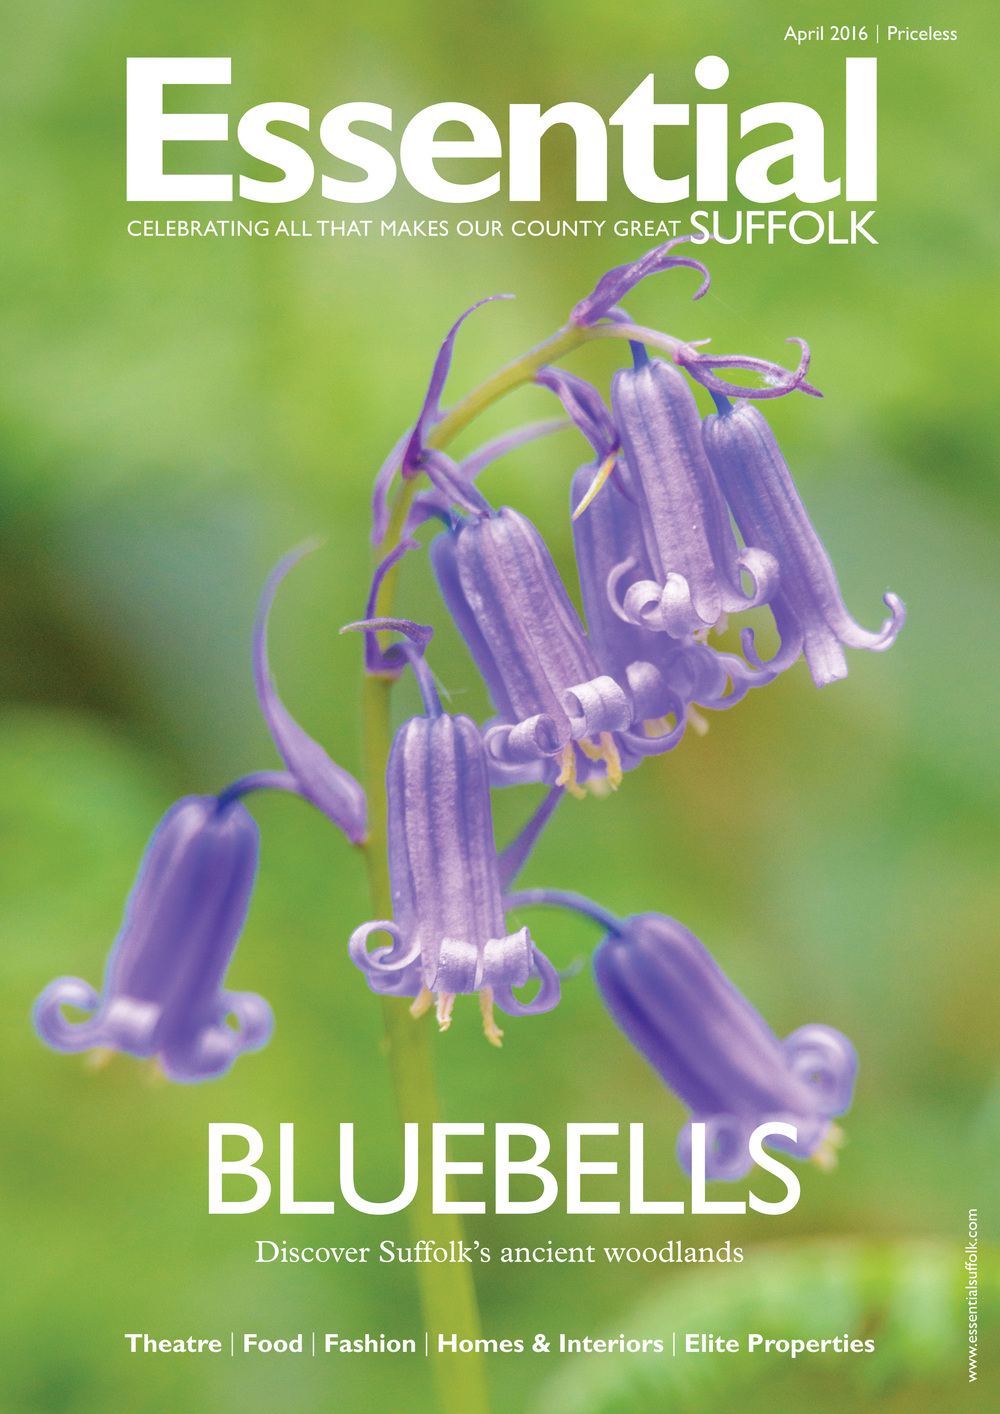 Essential Suffolk April 2016